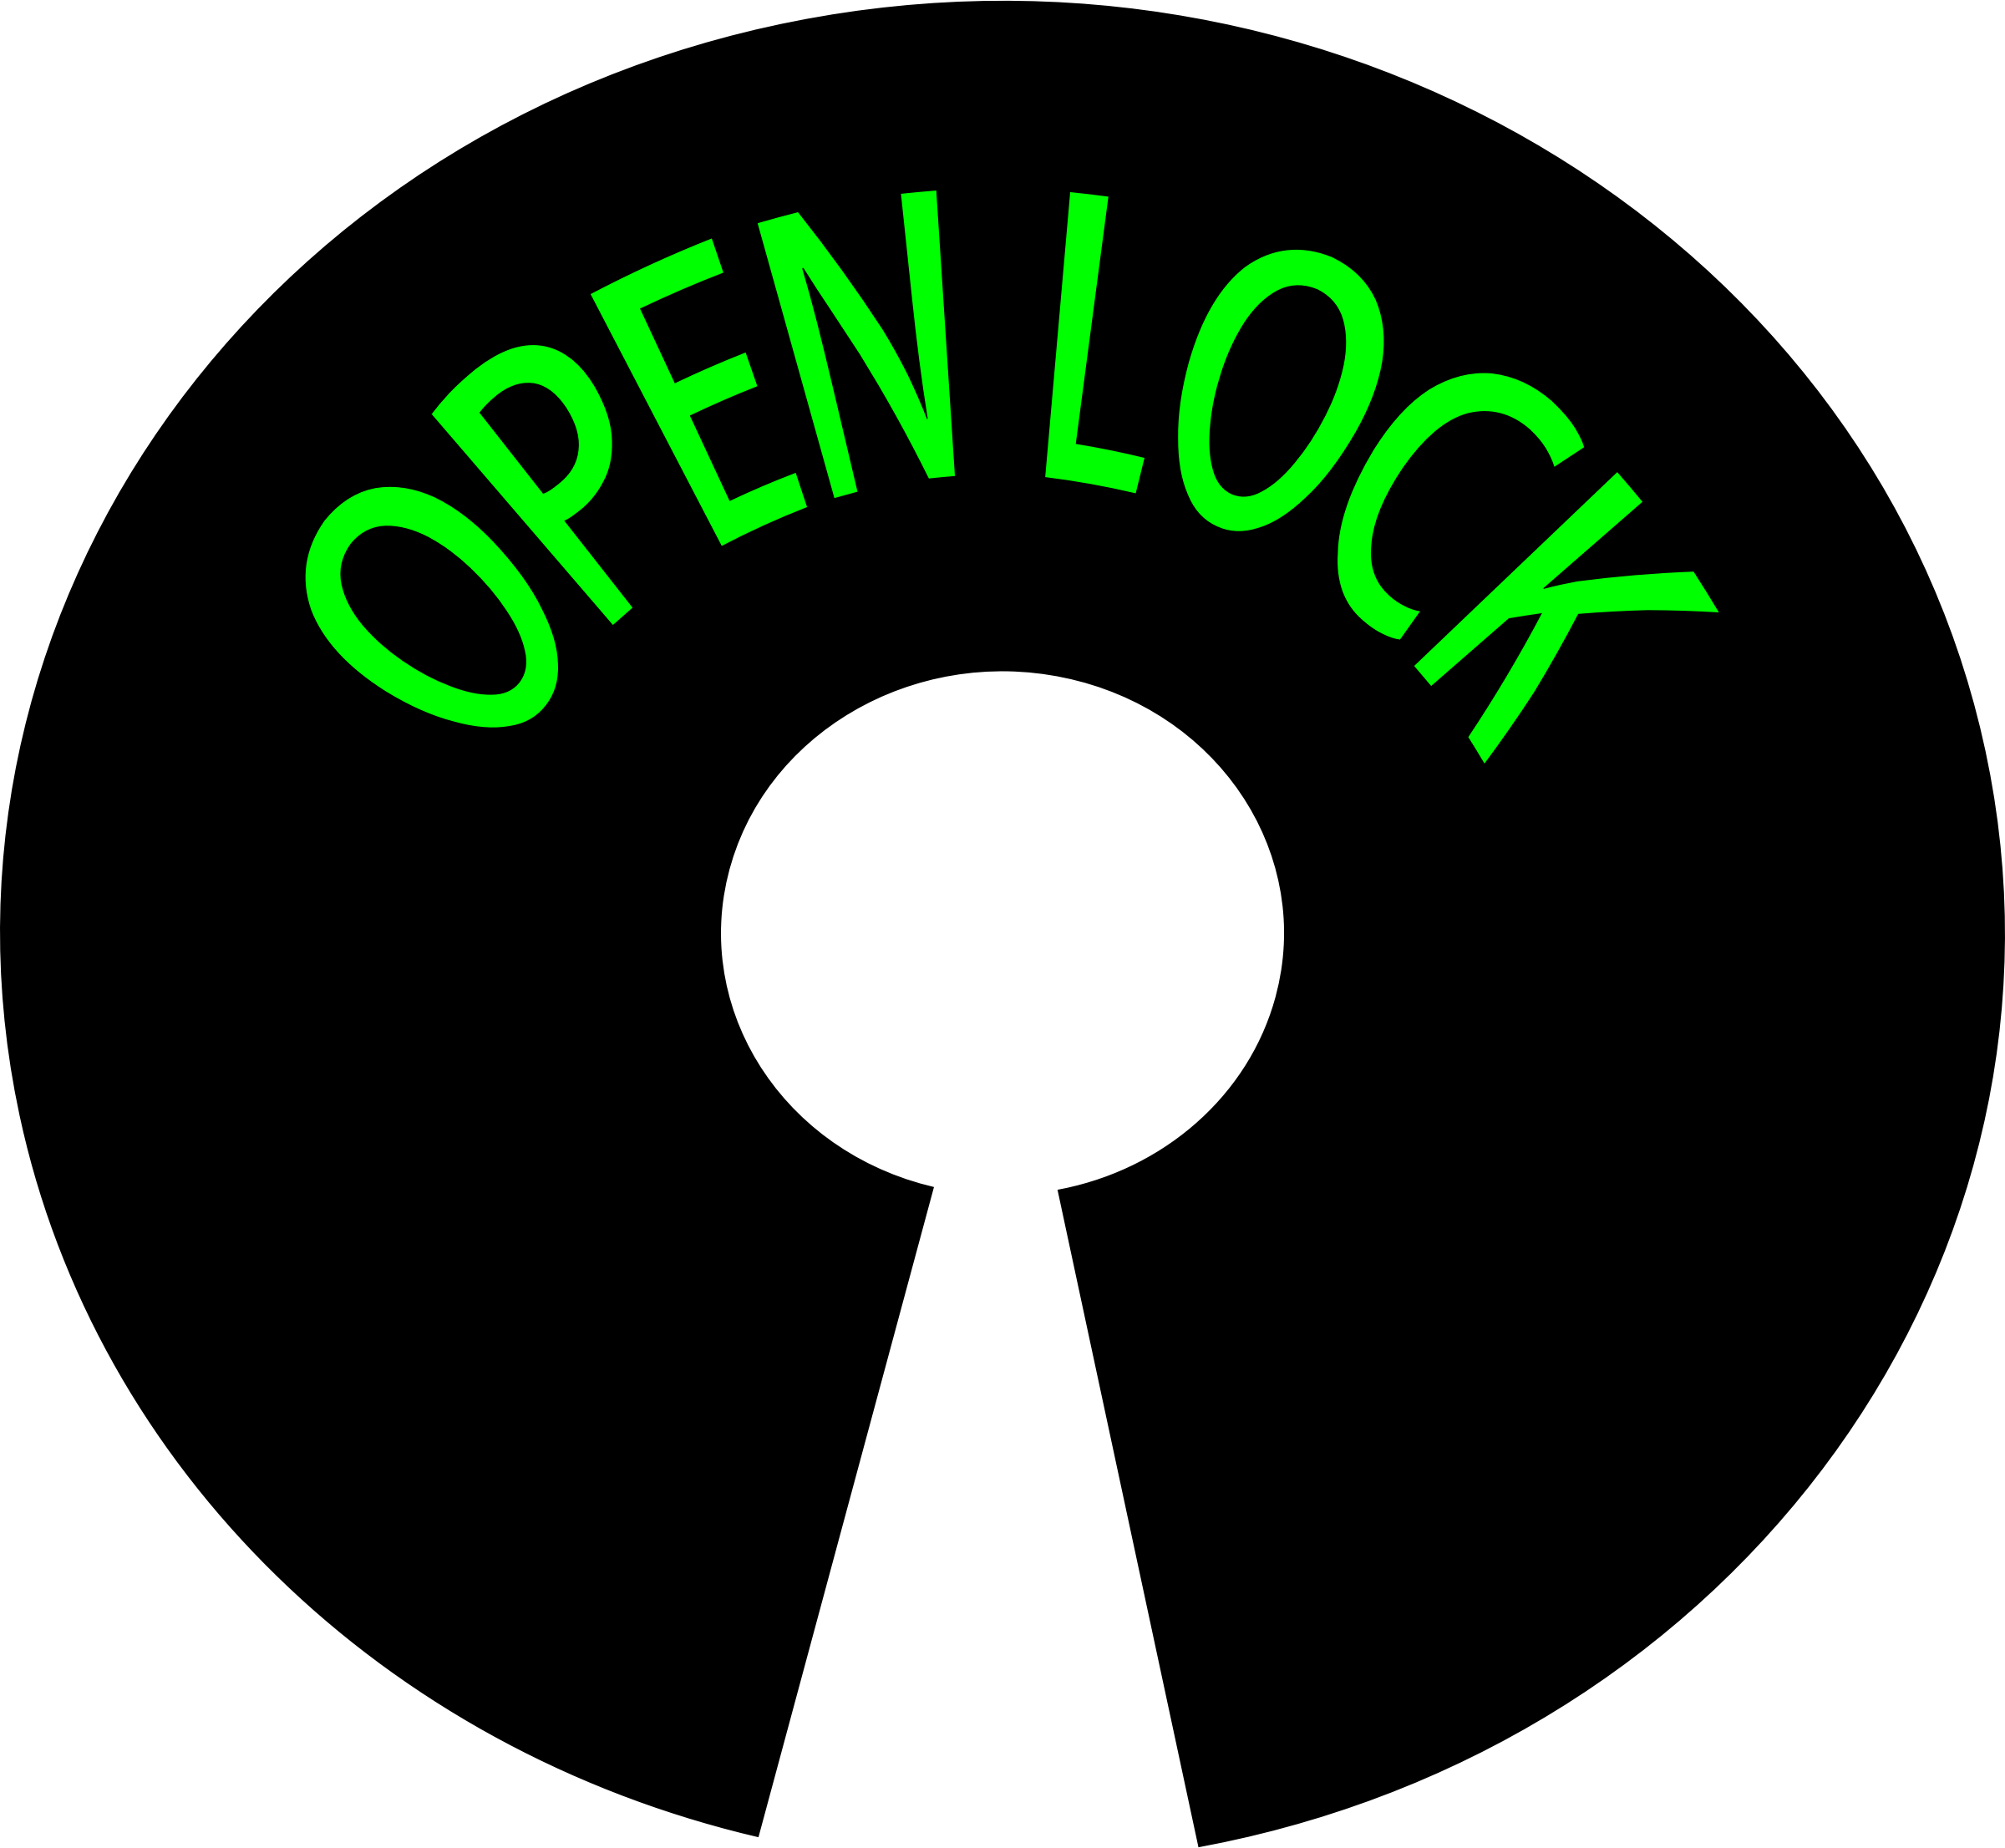 logo open lock by bobby520